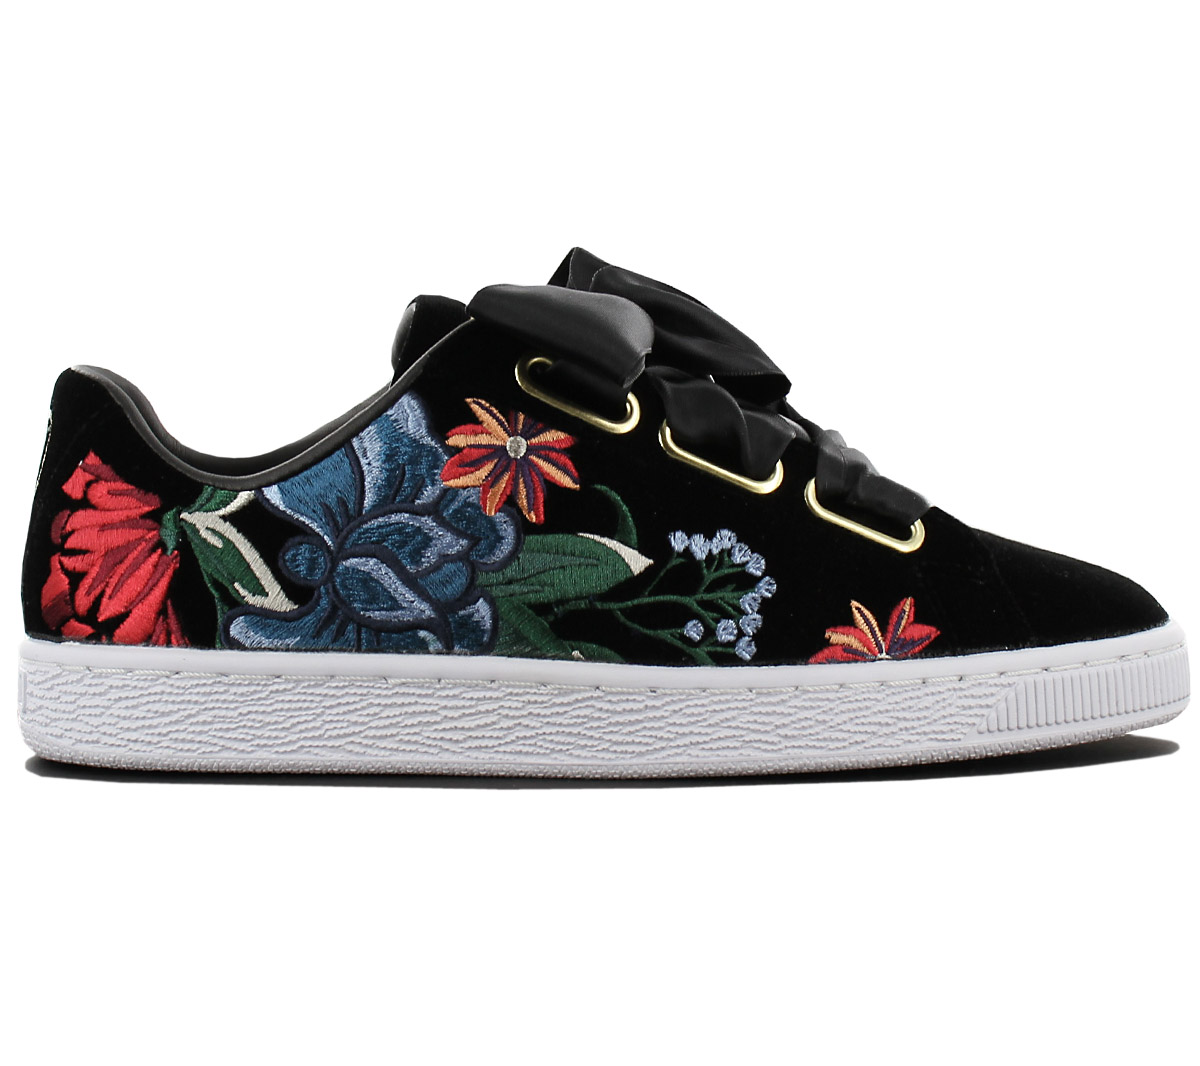 purchase cheap b5e2c 5c936 Details about Puma Basket Heart Hyper Flower Emb Women's Sneaker Shoes  Sneakers 366116-01 New